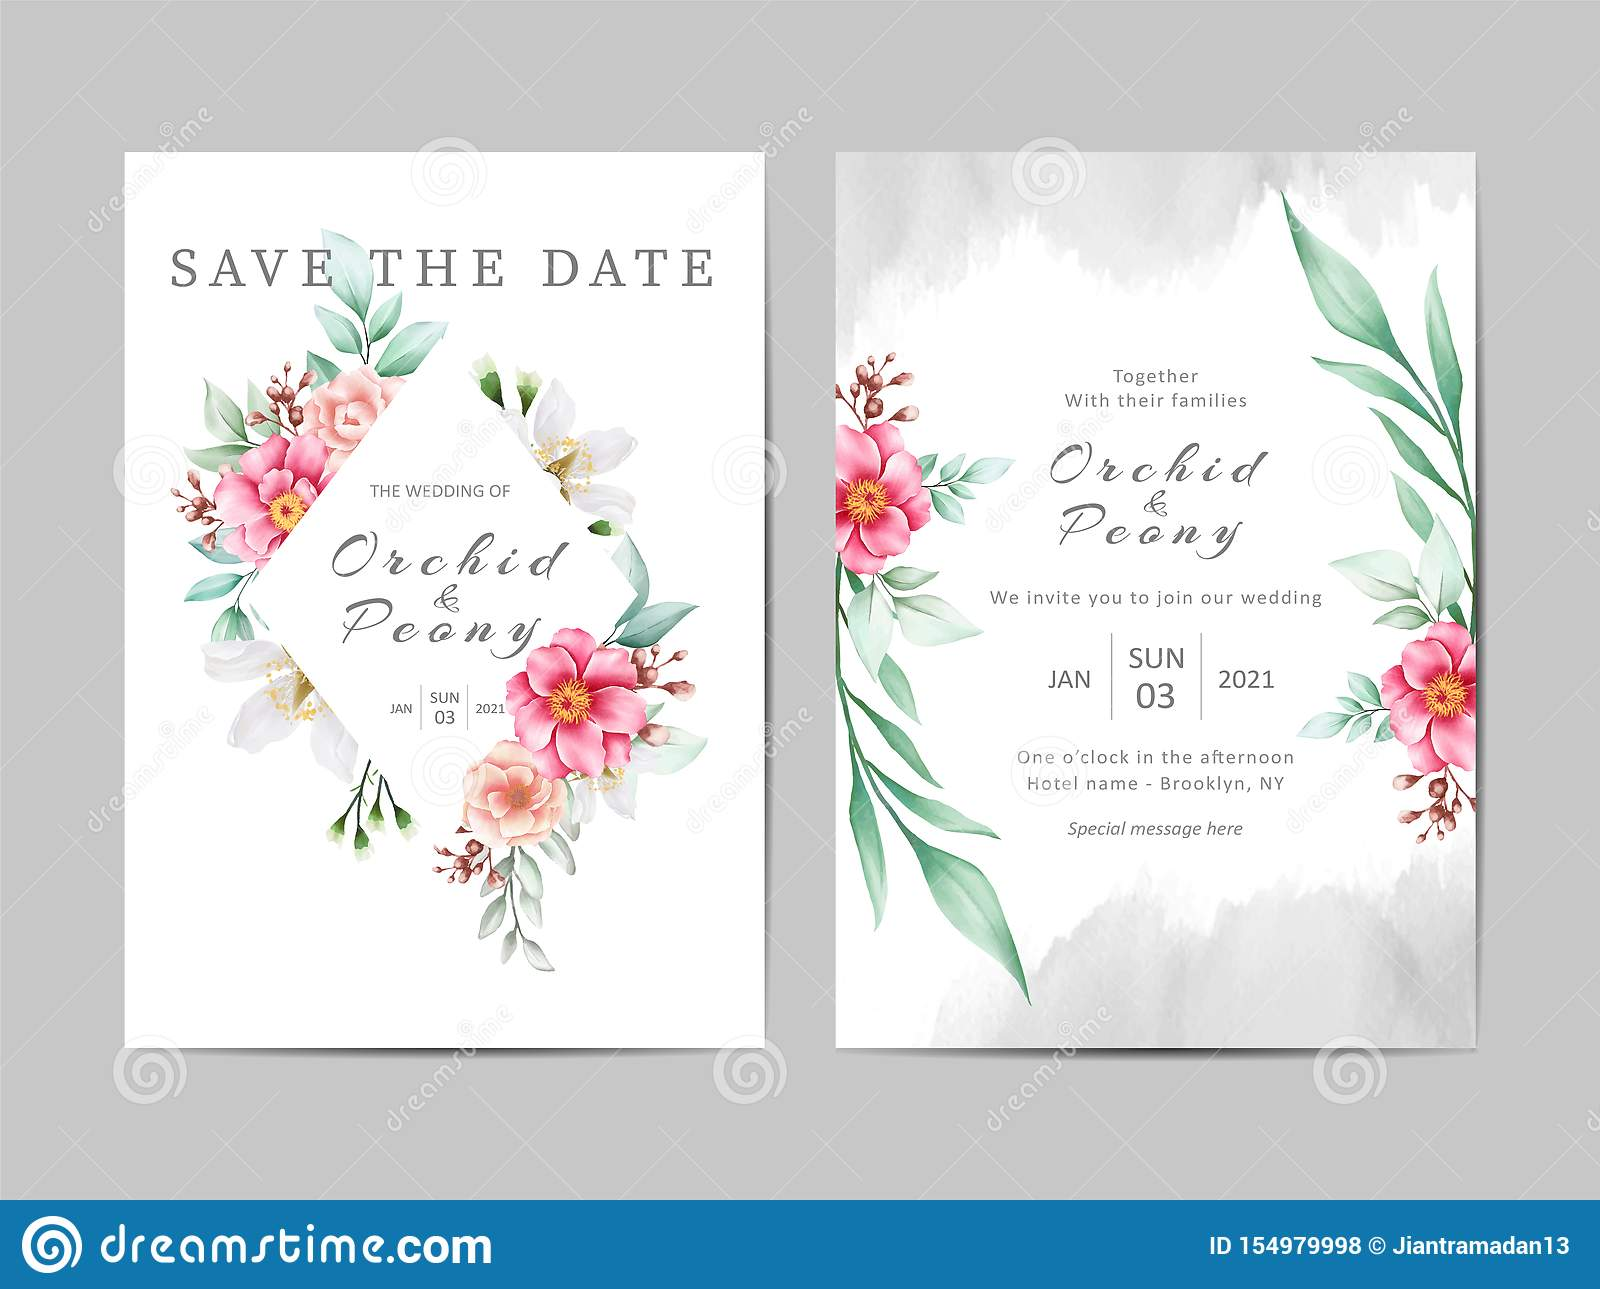 Romantic Wedding Invitation Template Cards Set Of Floral And Watercolor Background Stock Vector Illustration Of Autumn Natural 154979998